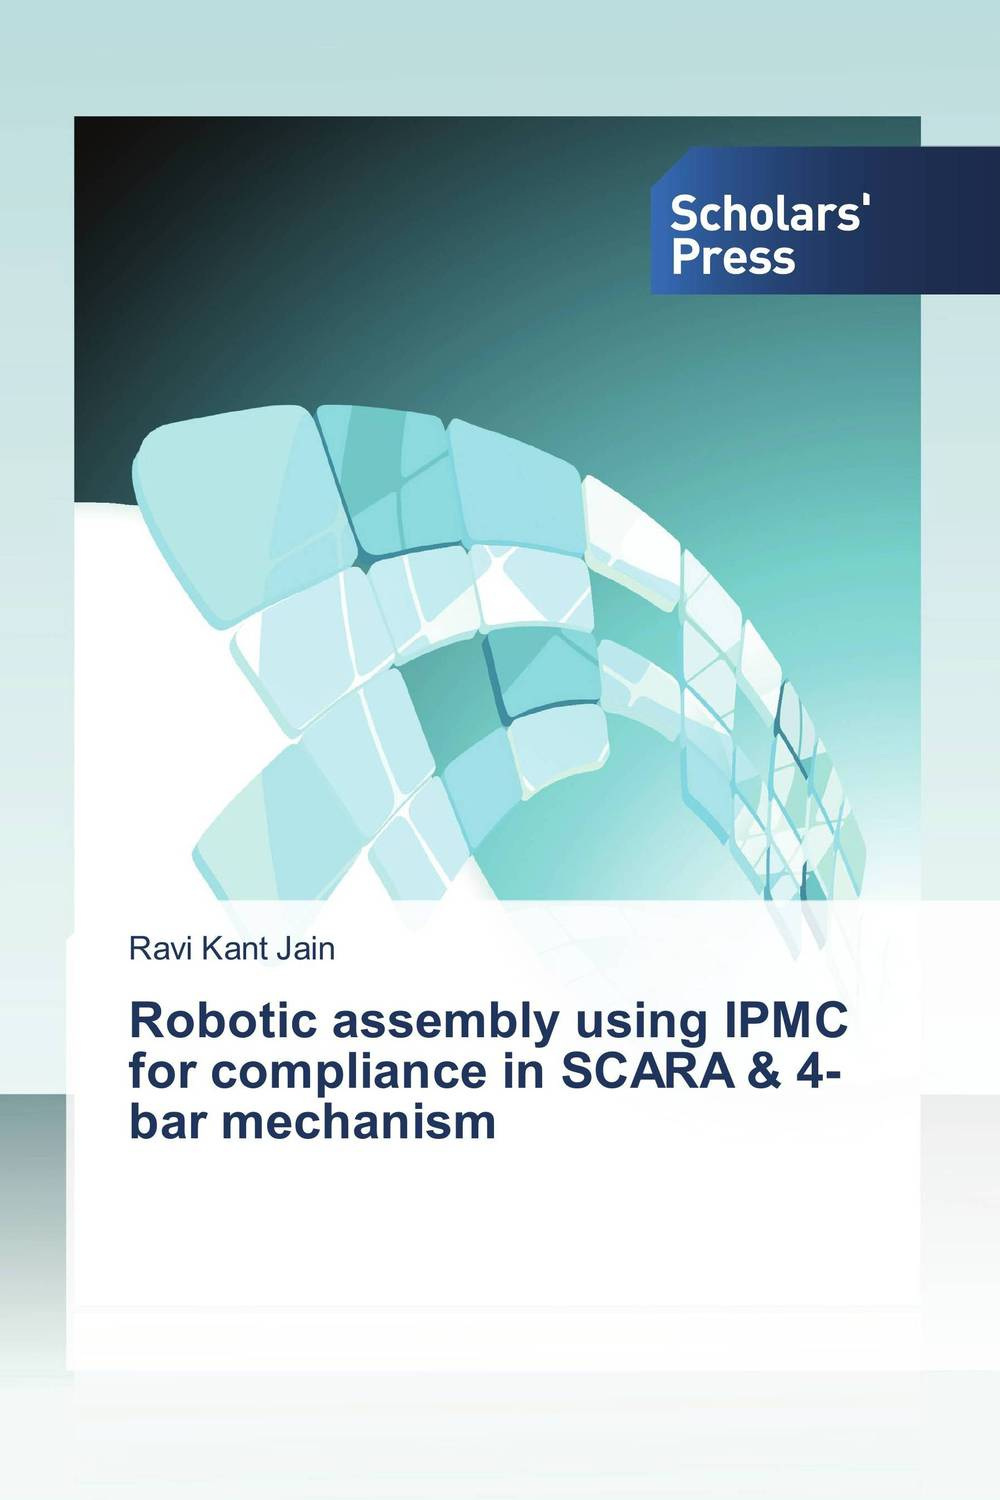 Robotic assembly using IPMC for compliance in SCARA & 4-bar mechanism adding value to the citrus pulp by enzyme biotechnology production